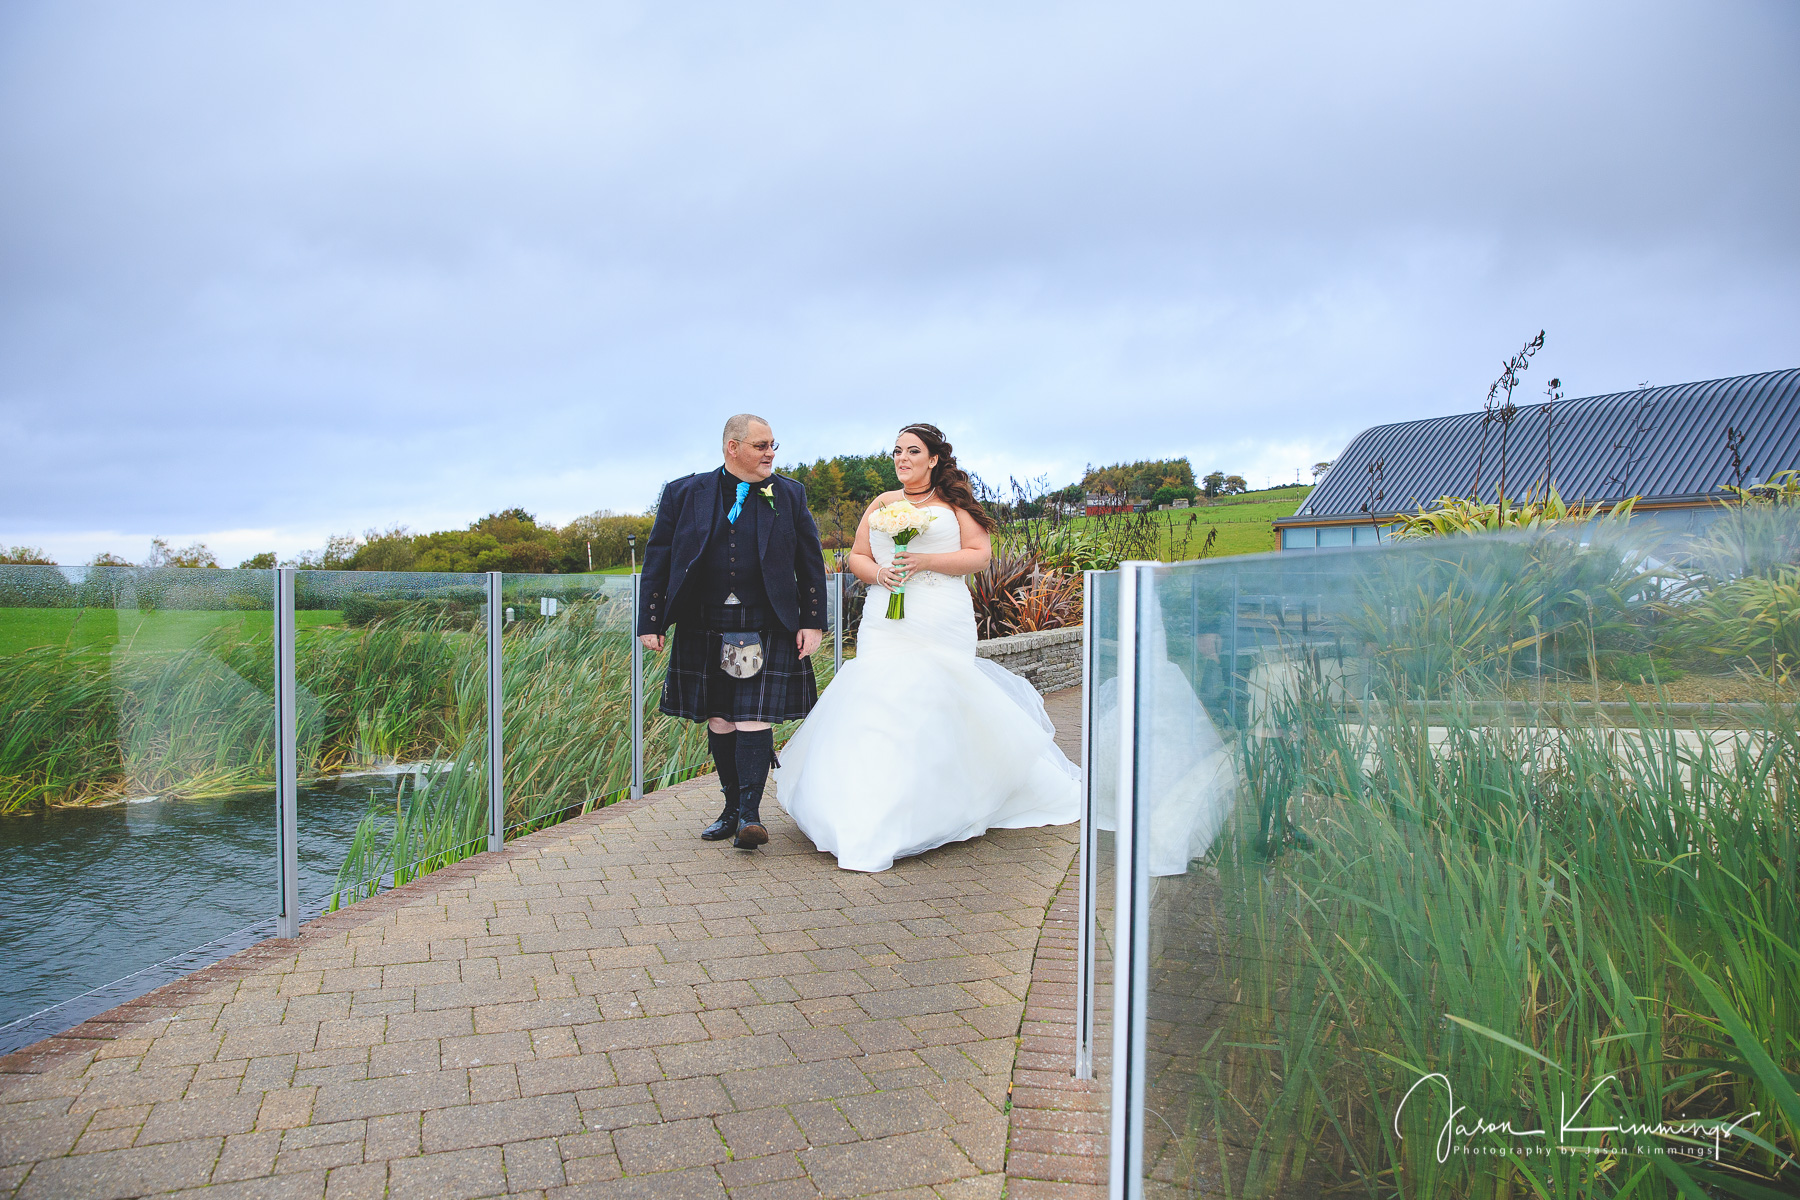 vu-wedding-photography-bathgate-7.jpg